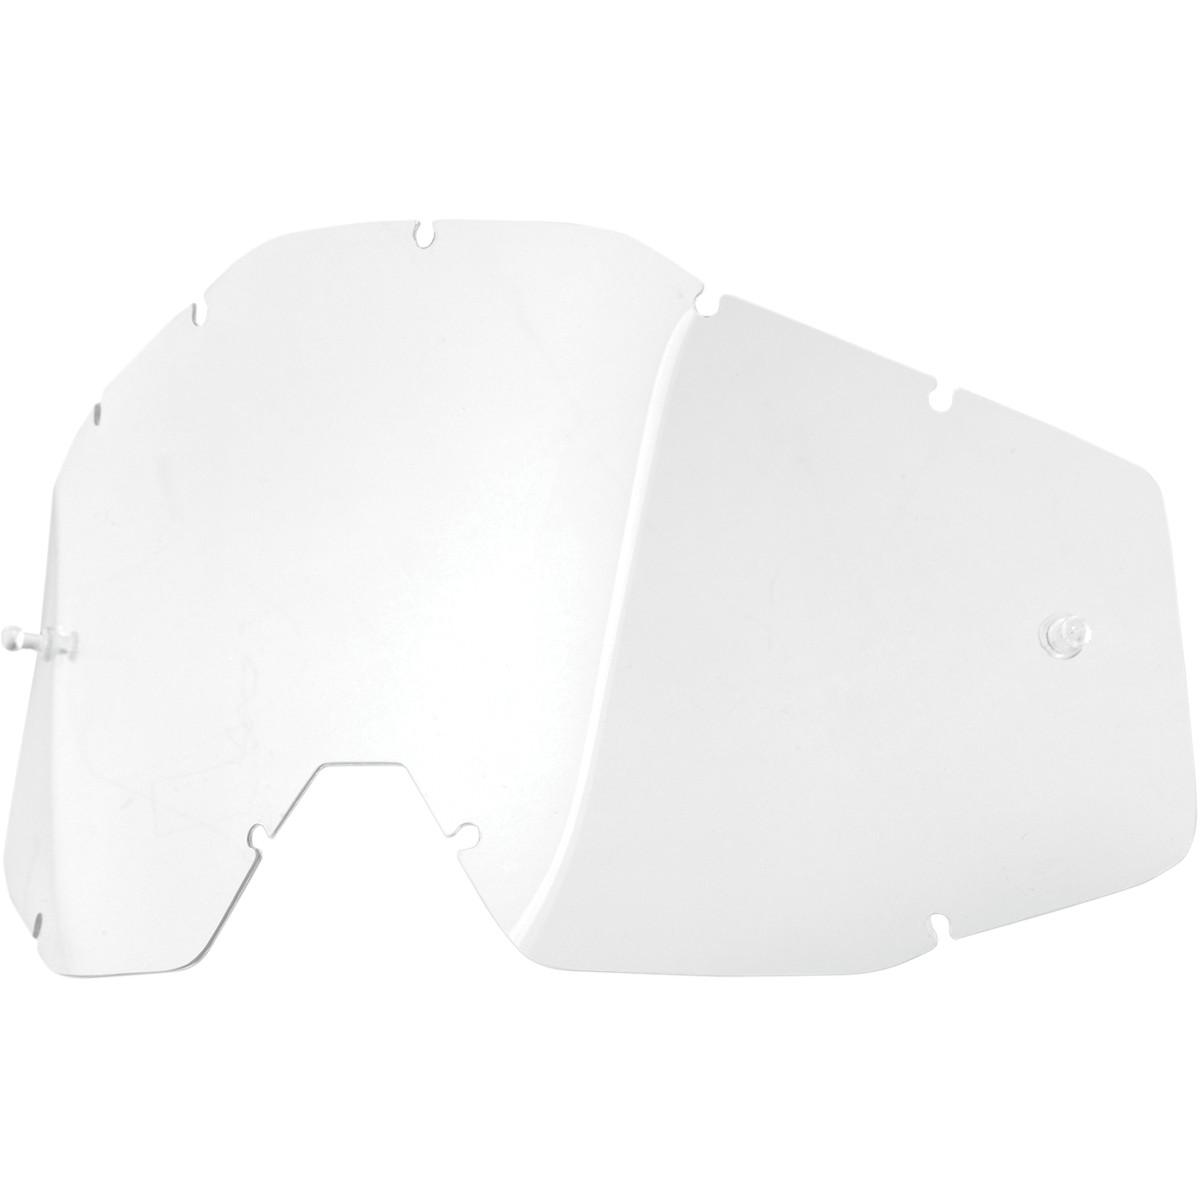 100% Replacement Lens for Racecraft/Accuri Goggles